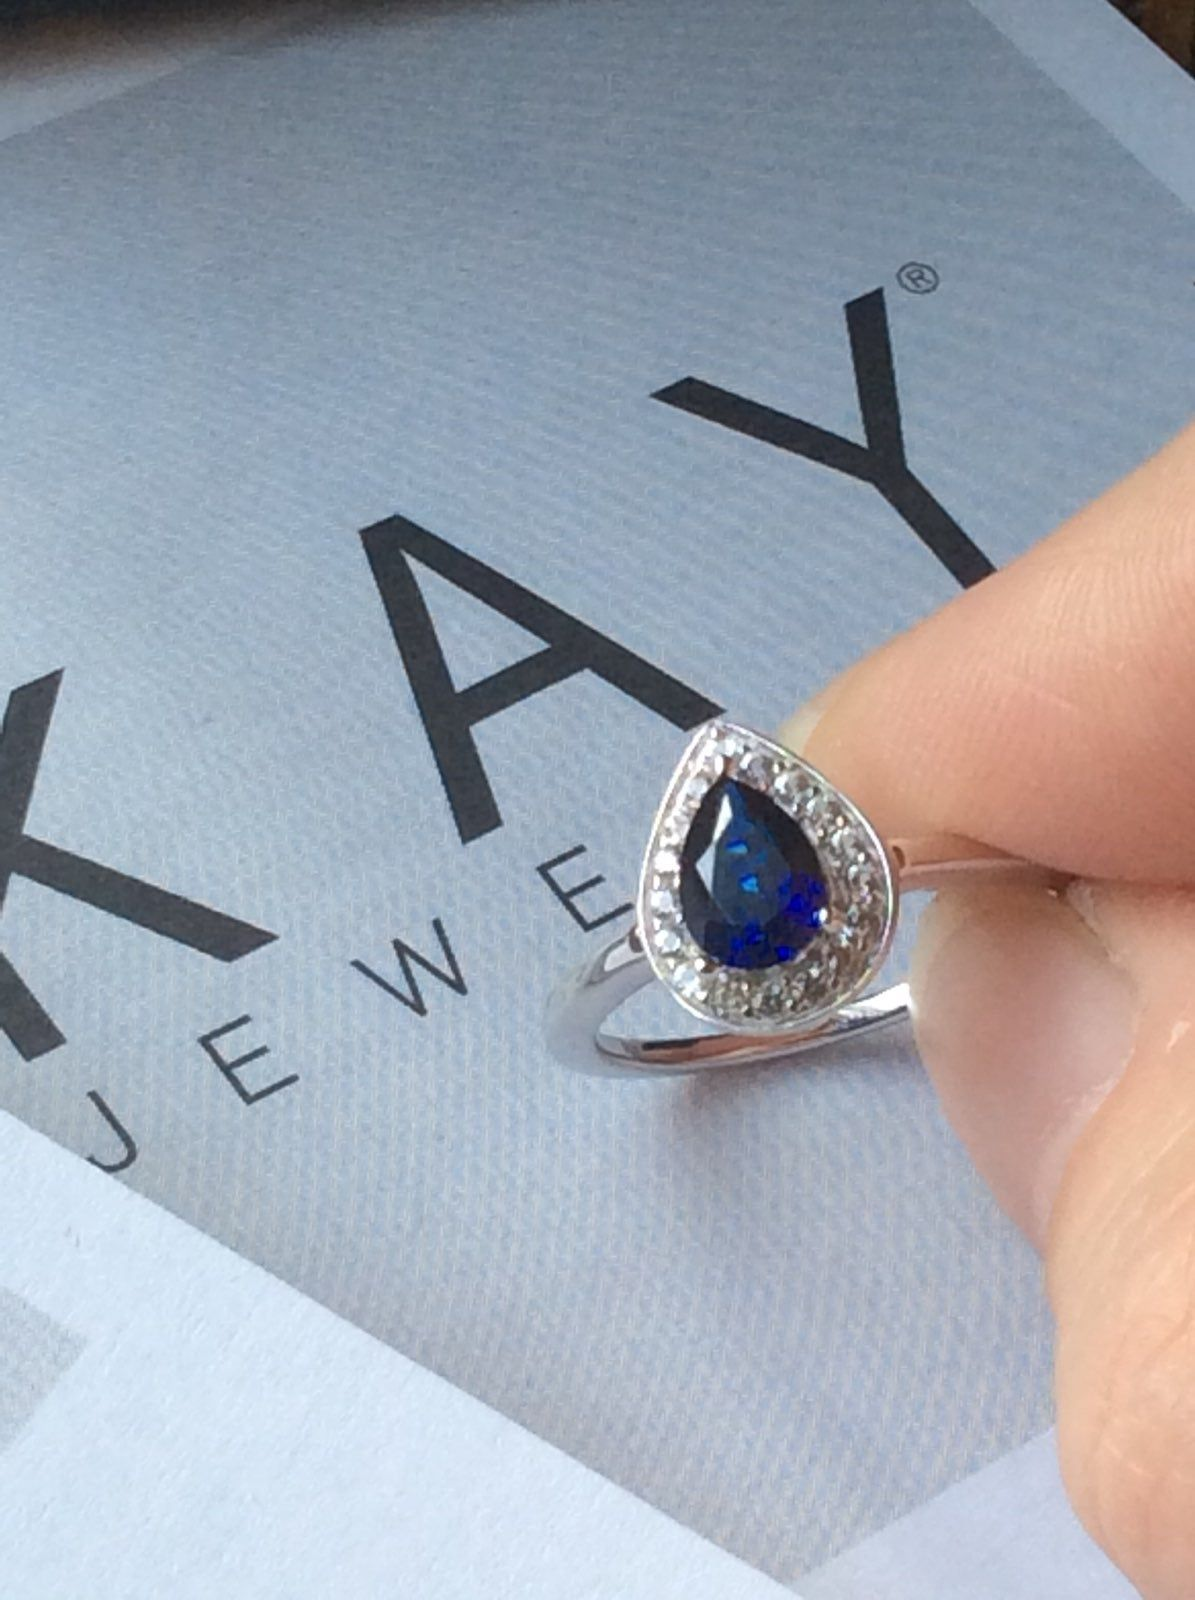 Kay Jewelers Blue Sapphire Ring It Is A Pear Shaped Blue Sapphire Surrounded B Sapphire Engagement Ring Blue Kay Jewelers Engagement Rings Blue Sapphire Rings